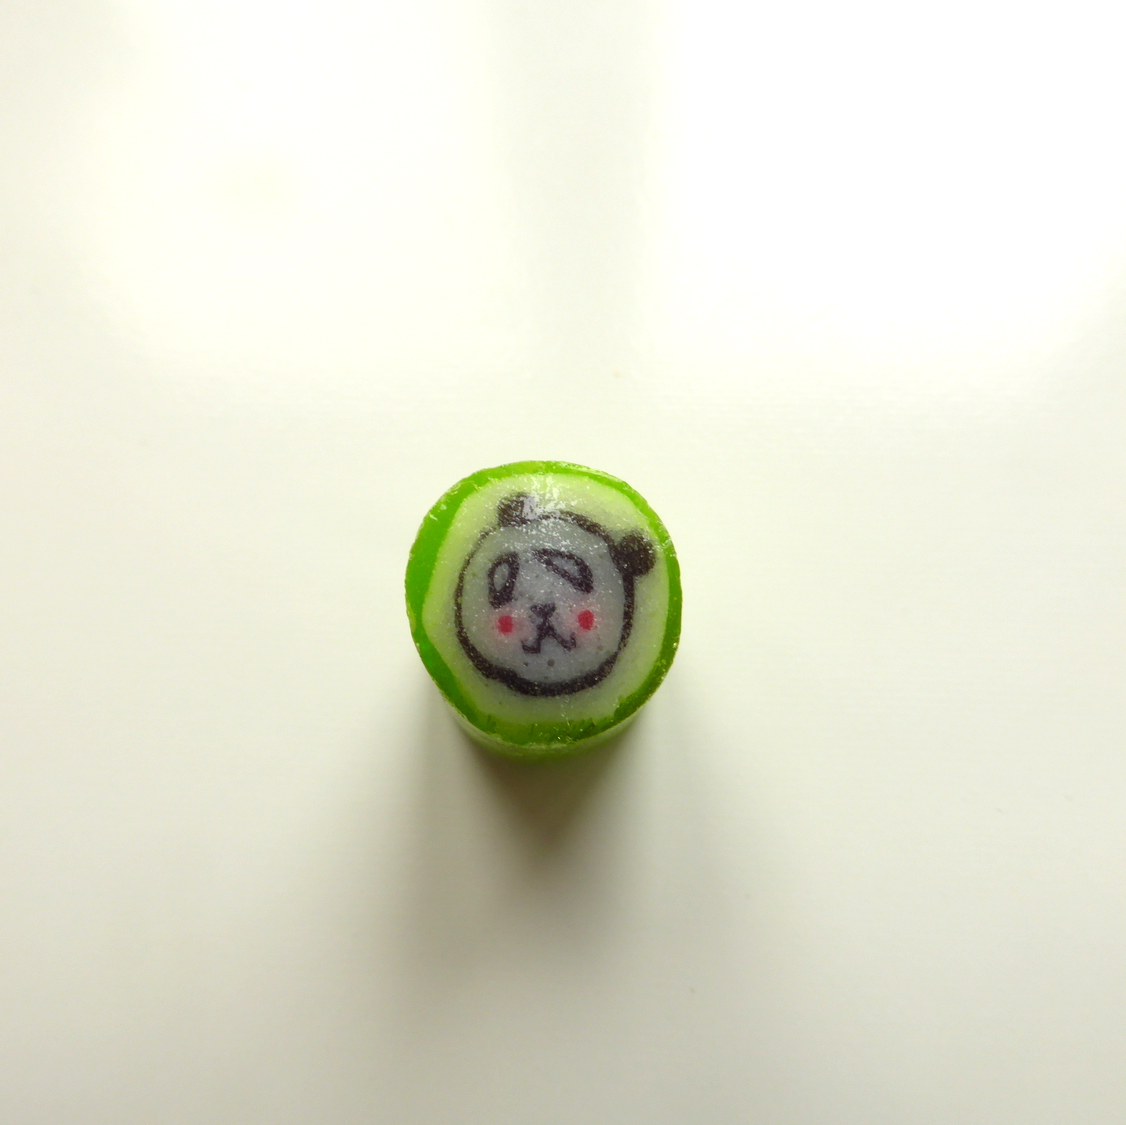 Candylabs Confiserie - Guava Candy - Panda Candy - Handmade Candy - Made in Montreal